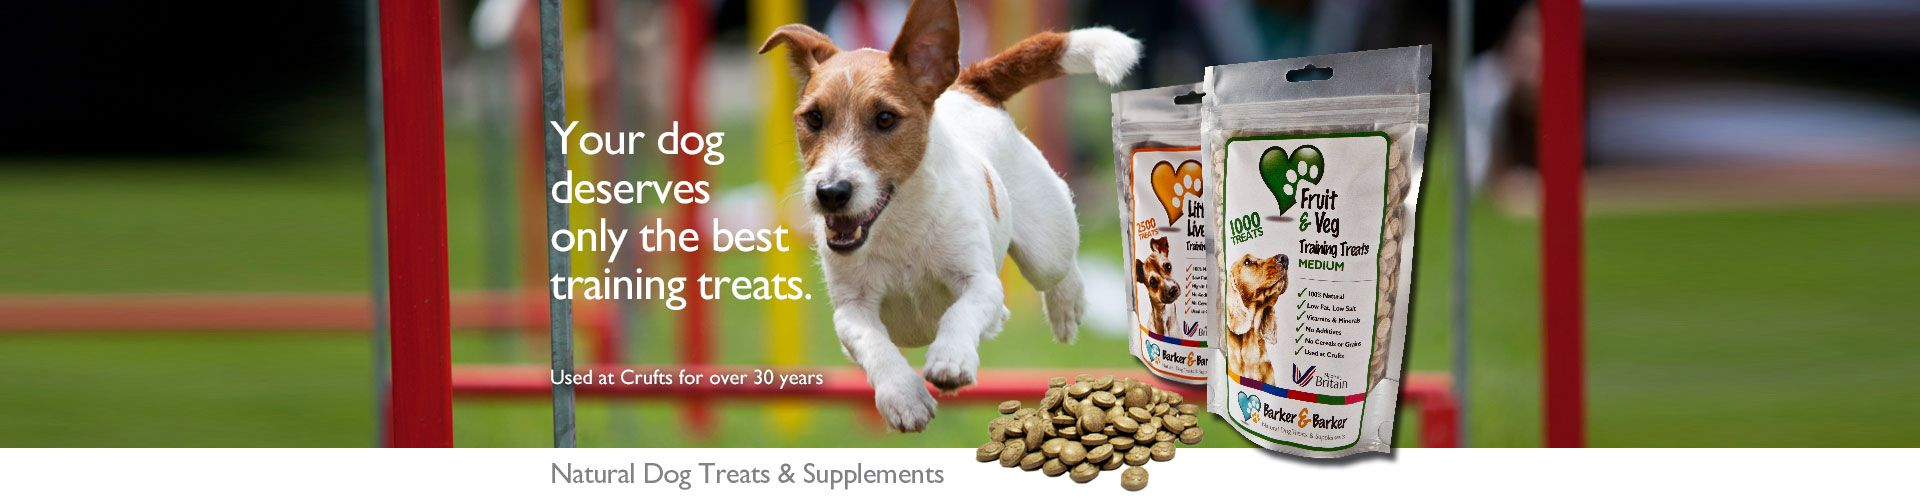 dog treats, dog training treats, puppy training treats, treats for dogs, low fat dog treats, natural dog treats, healthy dog treats, fish treats for dogs, liver treats for dogs, best dog treats, dog treats uk, supplements for dogs, dog supplements --> www.barkerandbarkertreats.co.uk